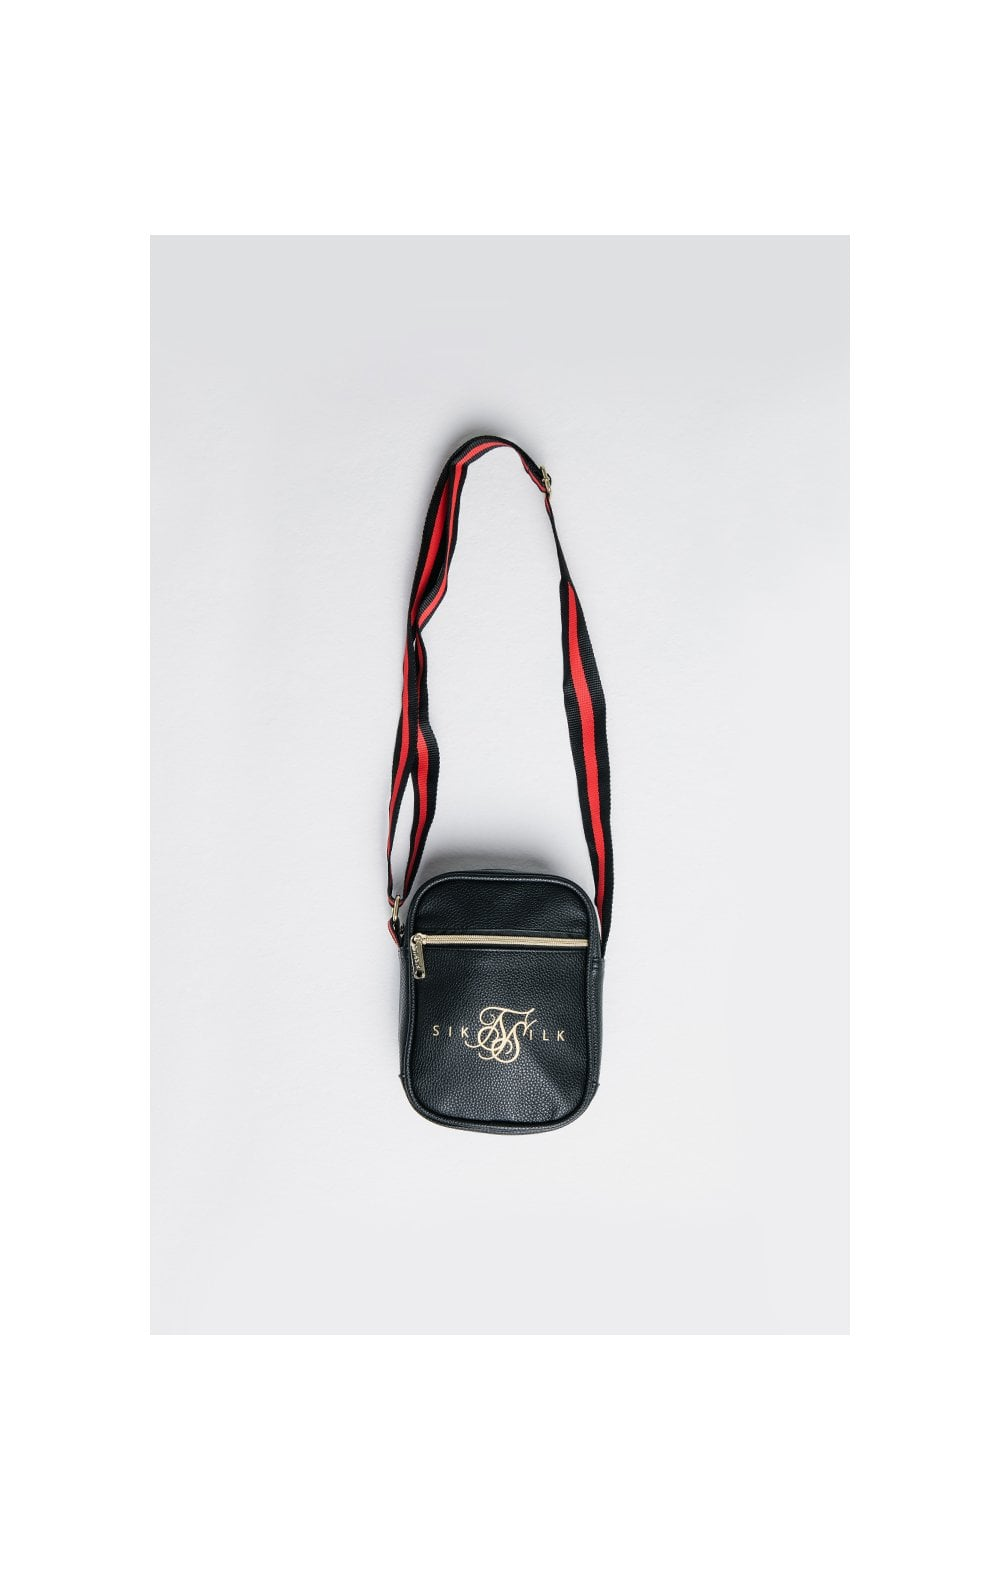 SikSilk Cross Body Bag - Black (4)